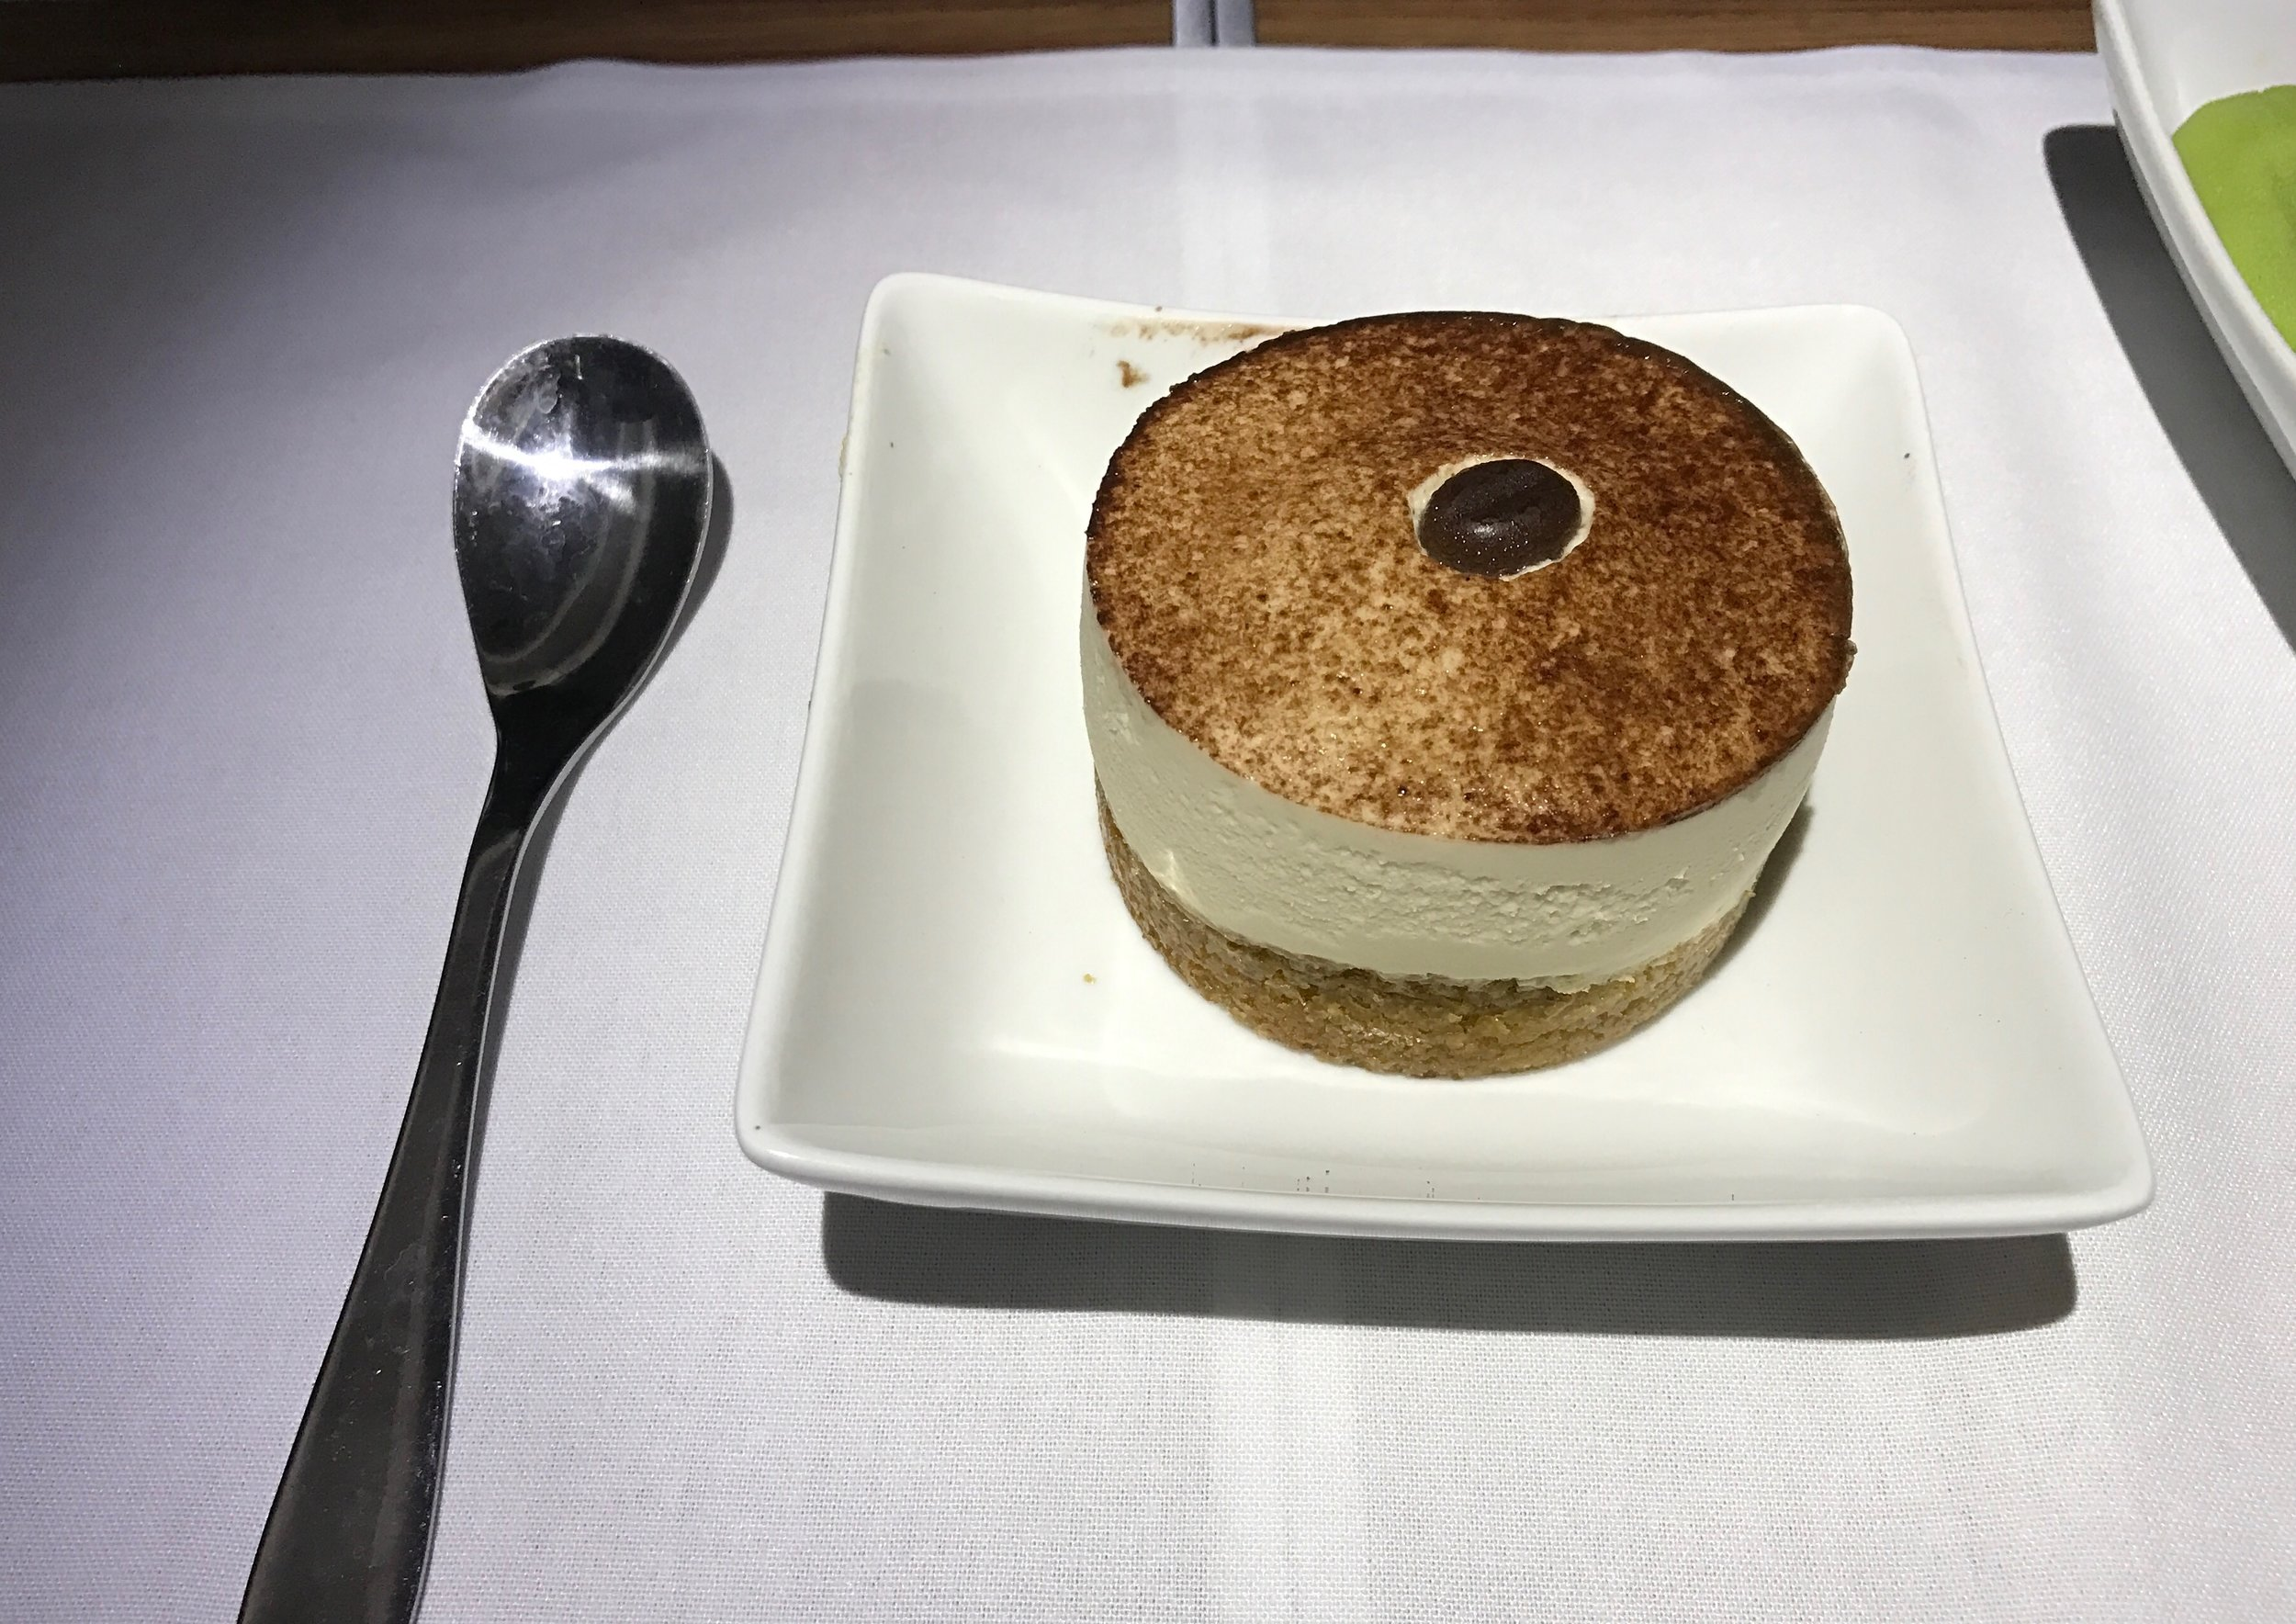 AA 787 Dreamliner Business Class cappuccino mousse cake